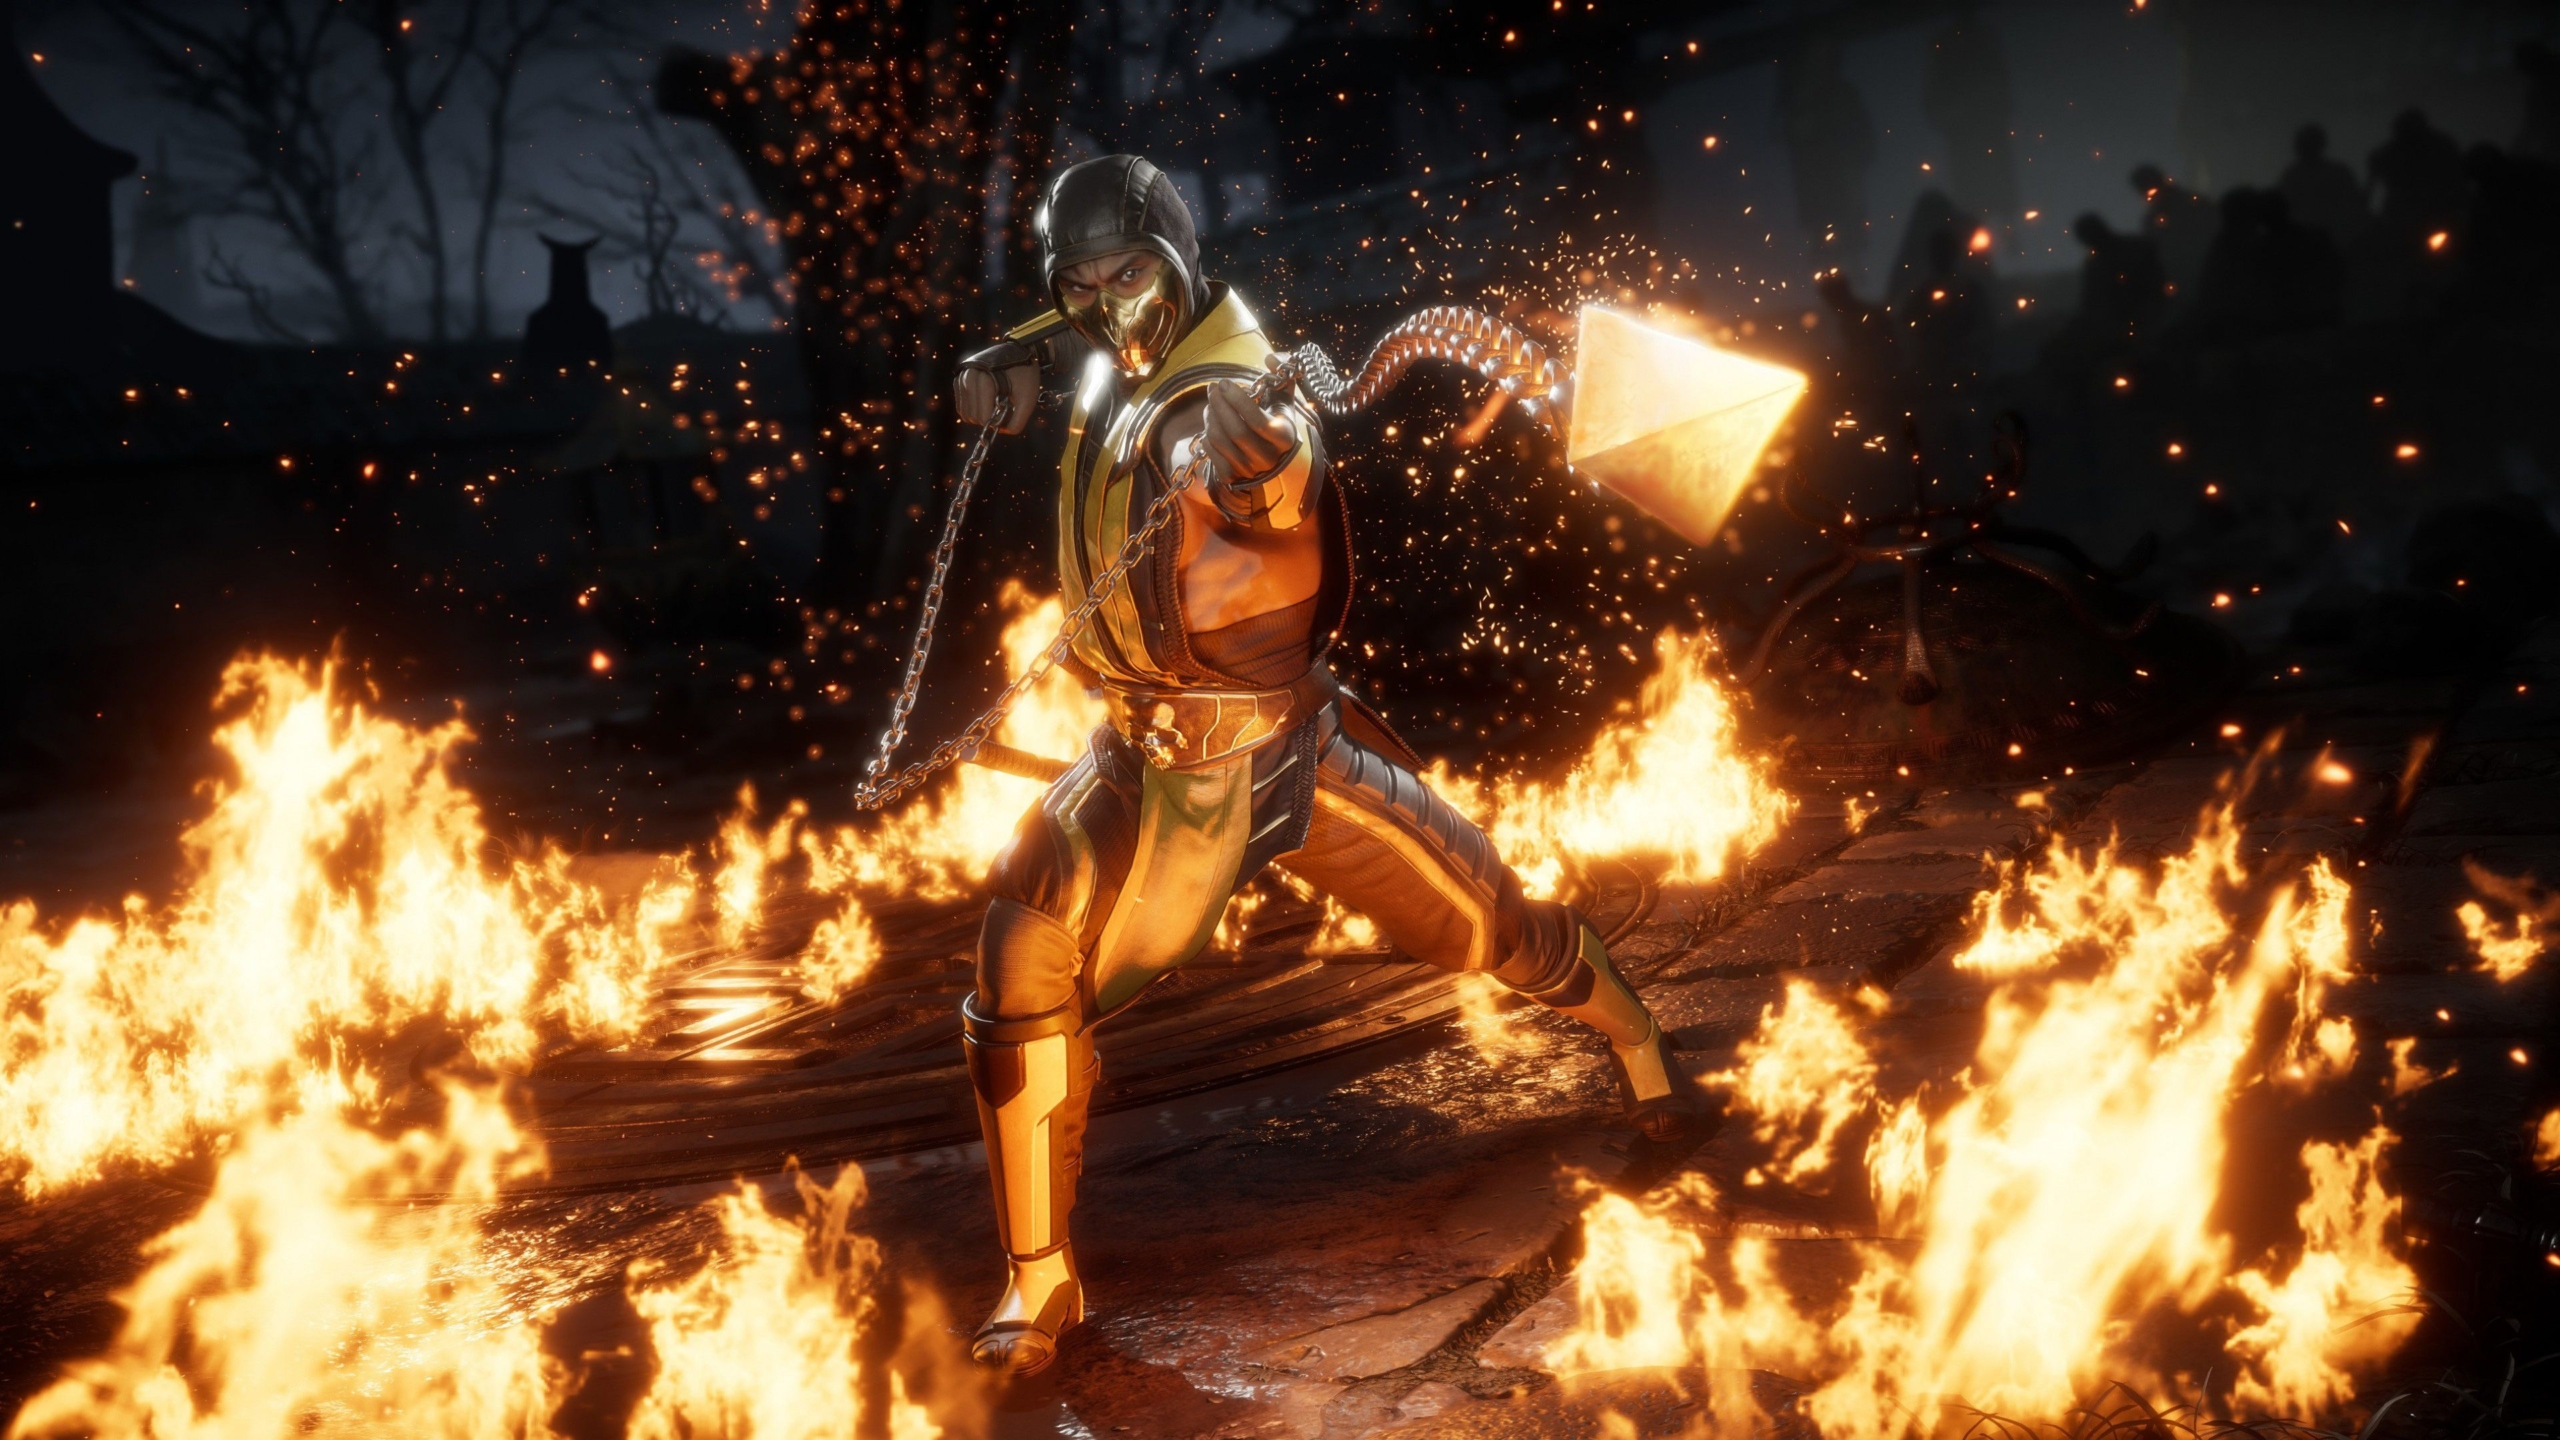 Some Interesting Facts About the MK11 Wallpaper